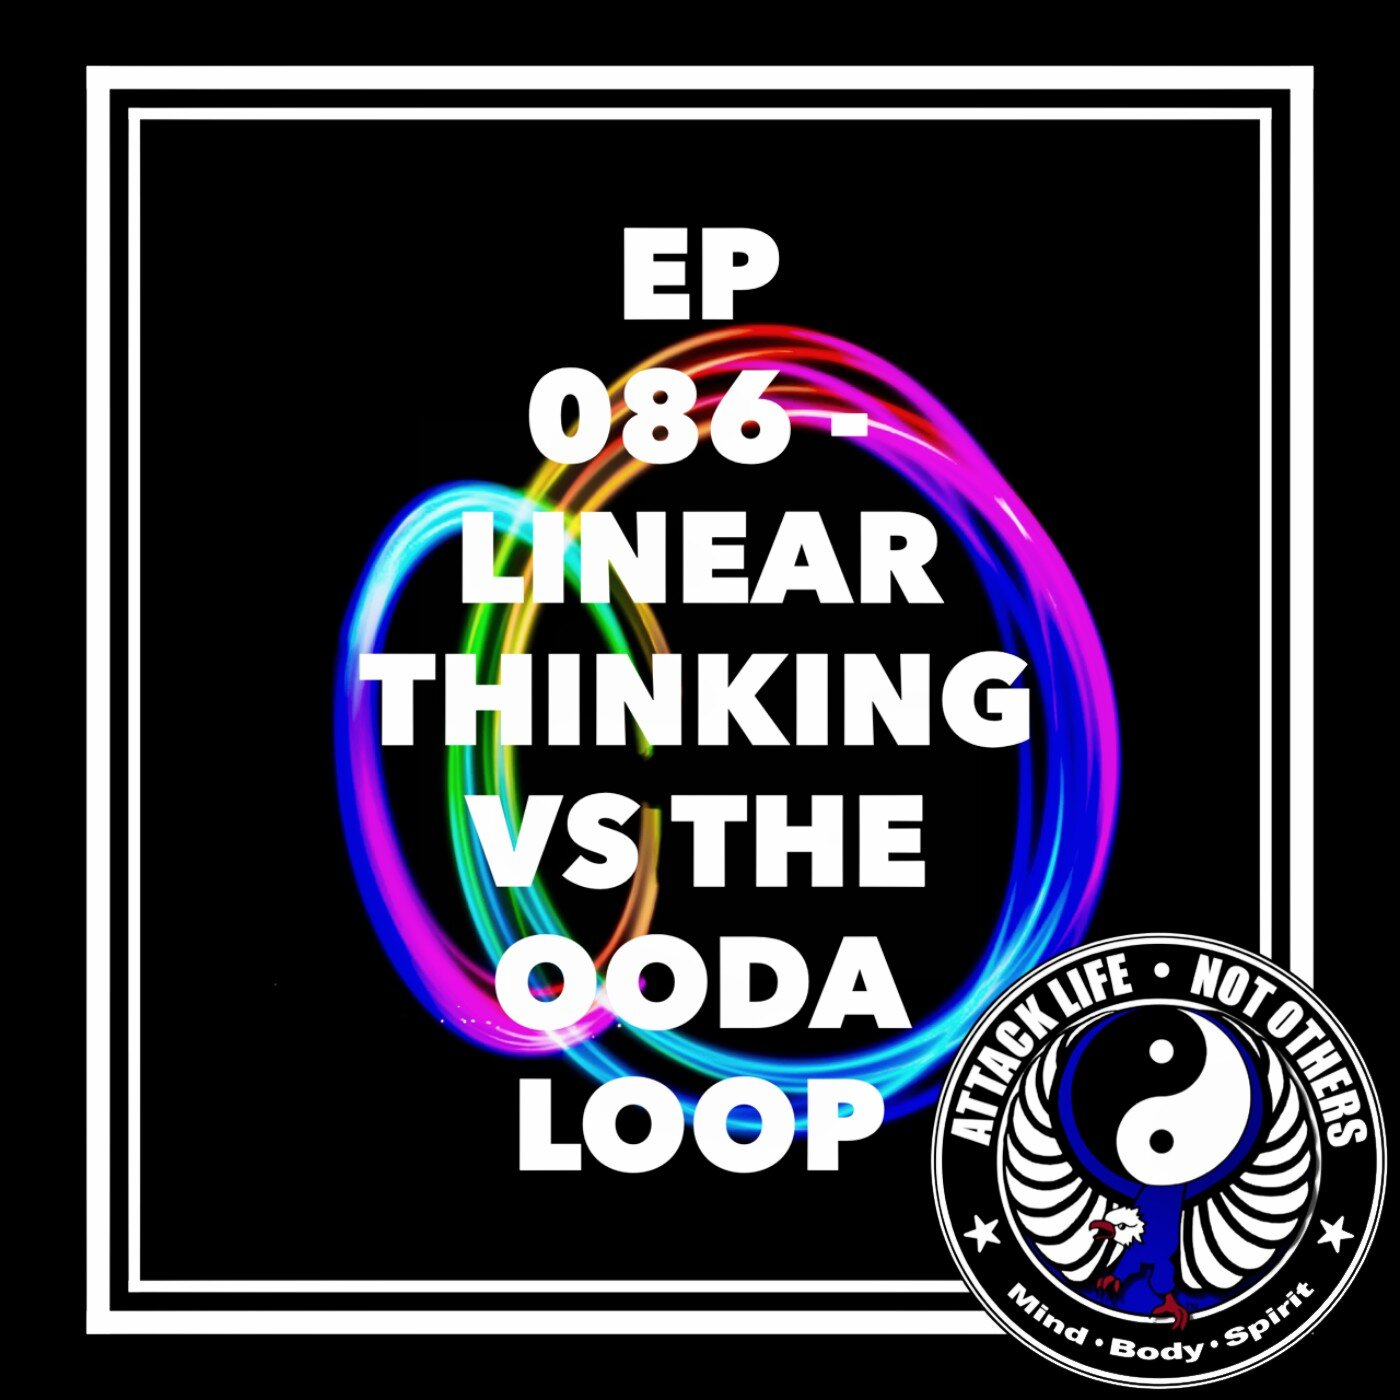 Ep 086 - Linear Thinking vs The OODA Loop